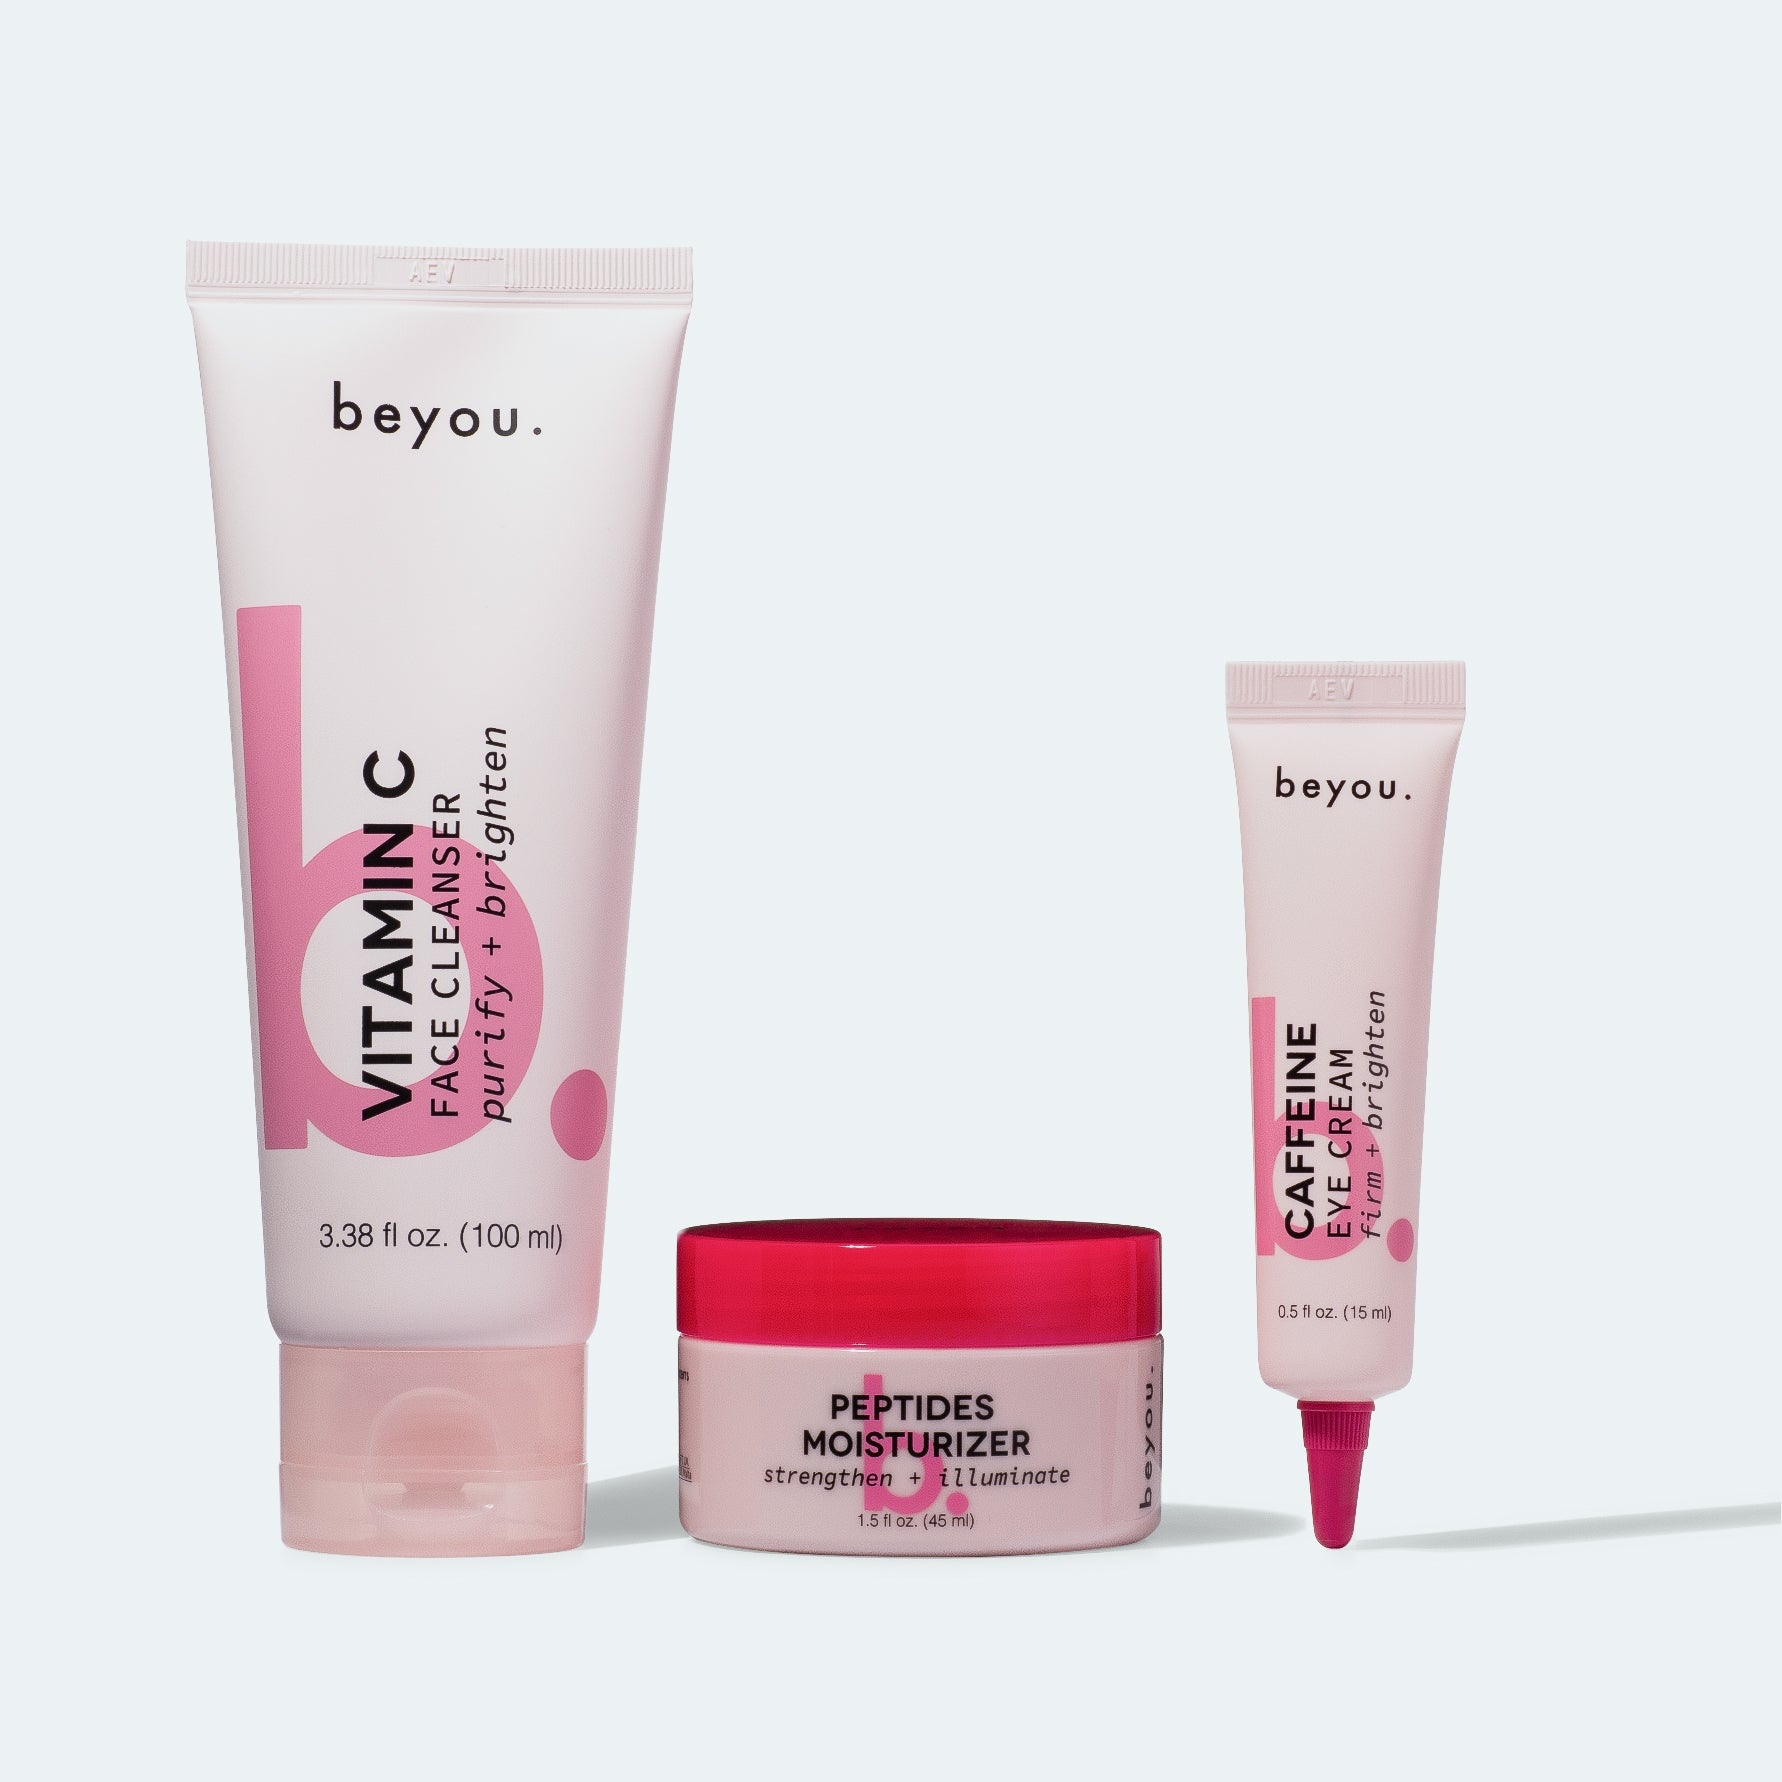 The Skincare Set